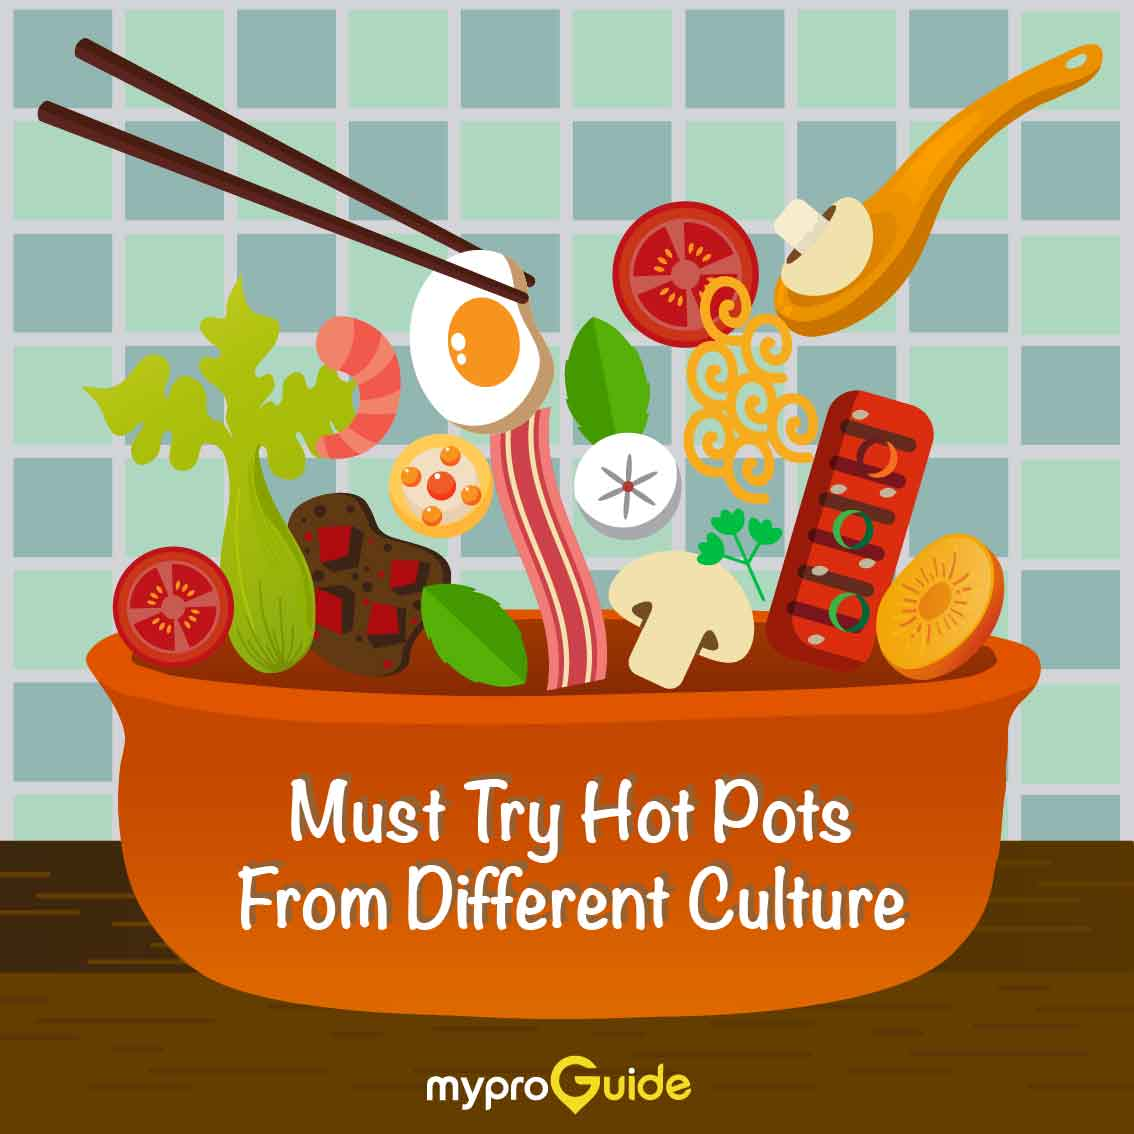 must-try-hot-pots-from-different-culture-taiwan-myproguide